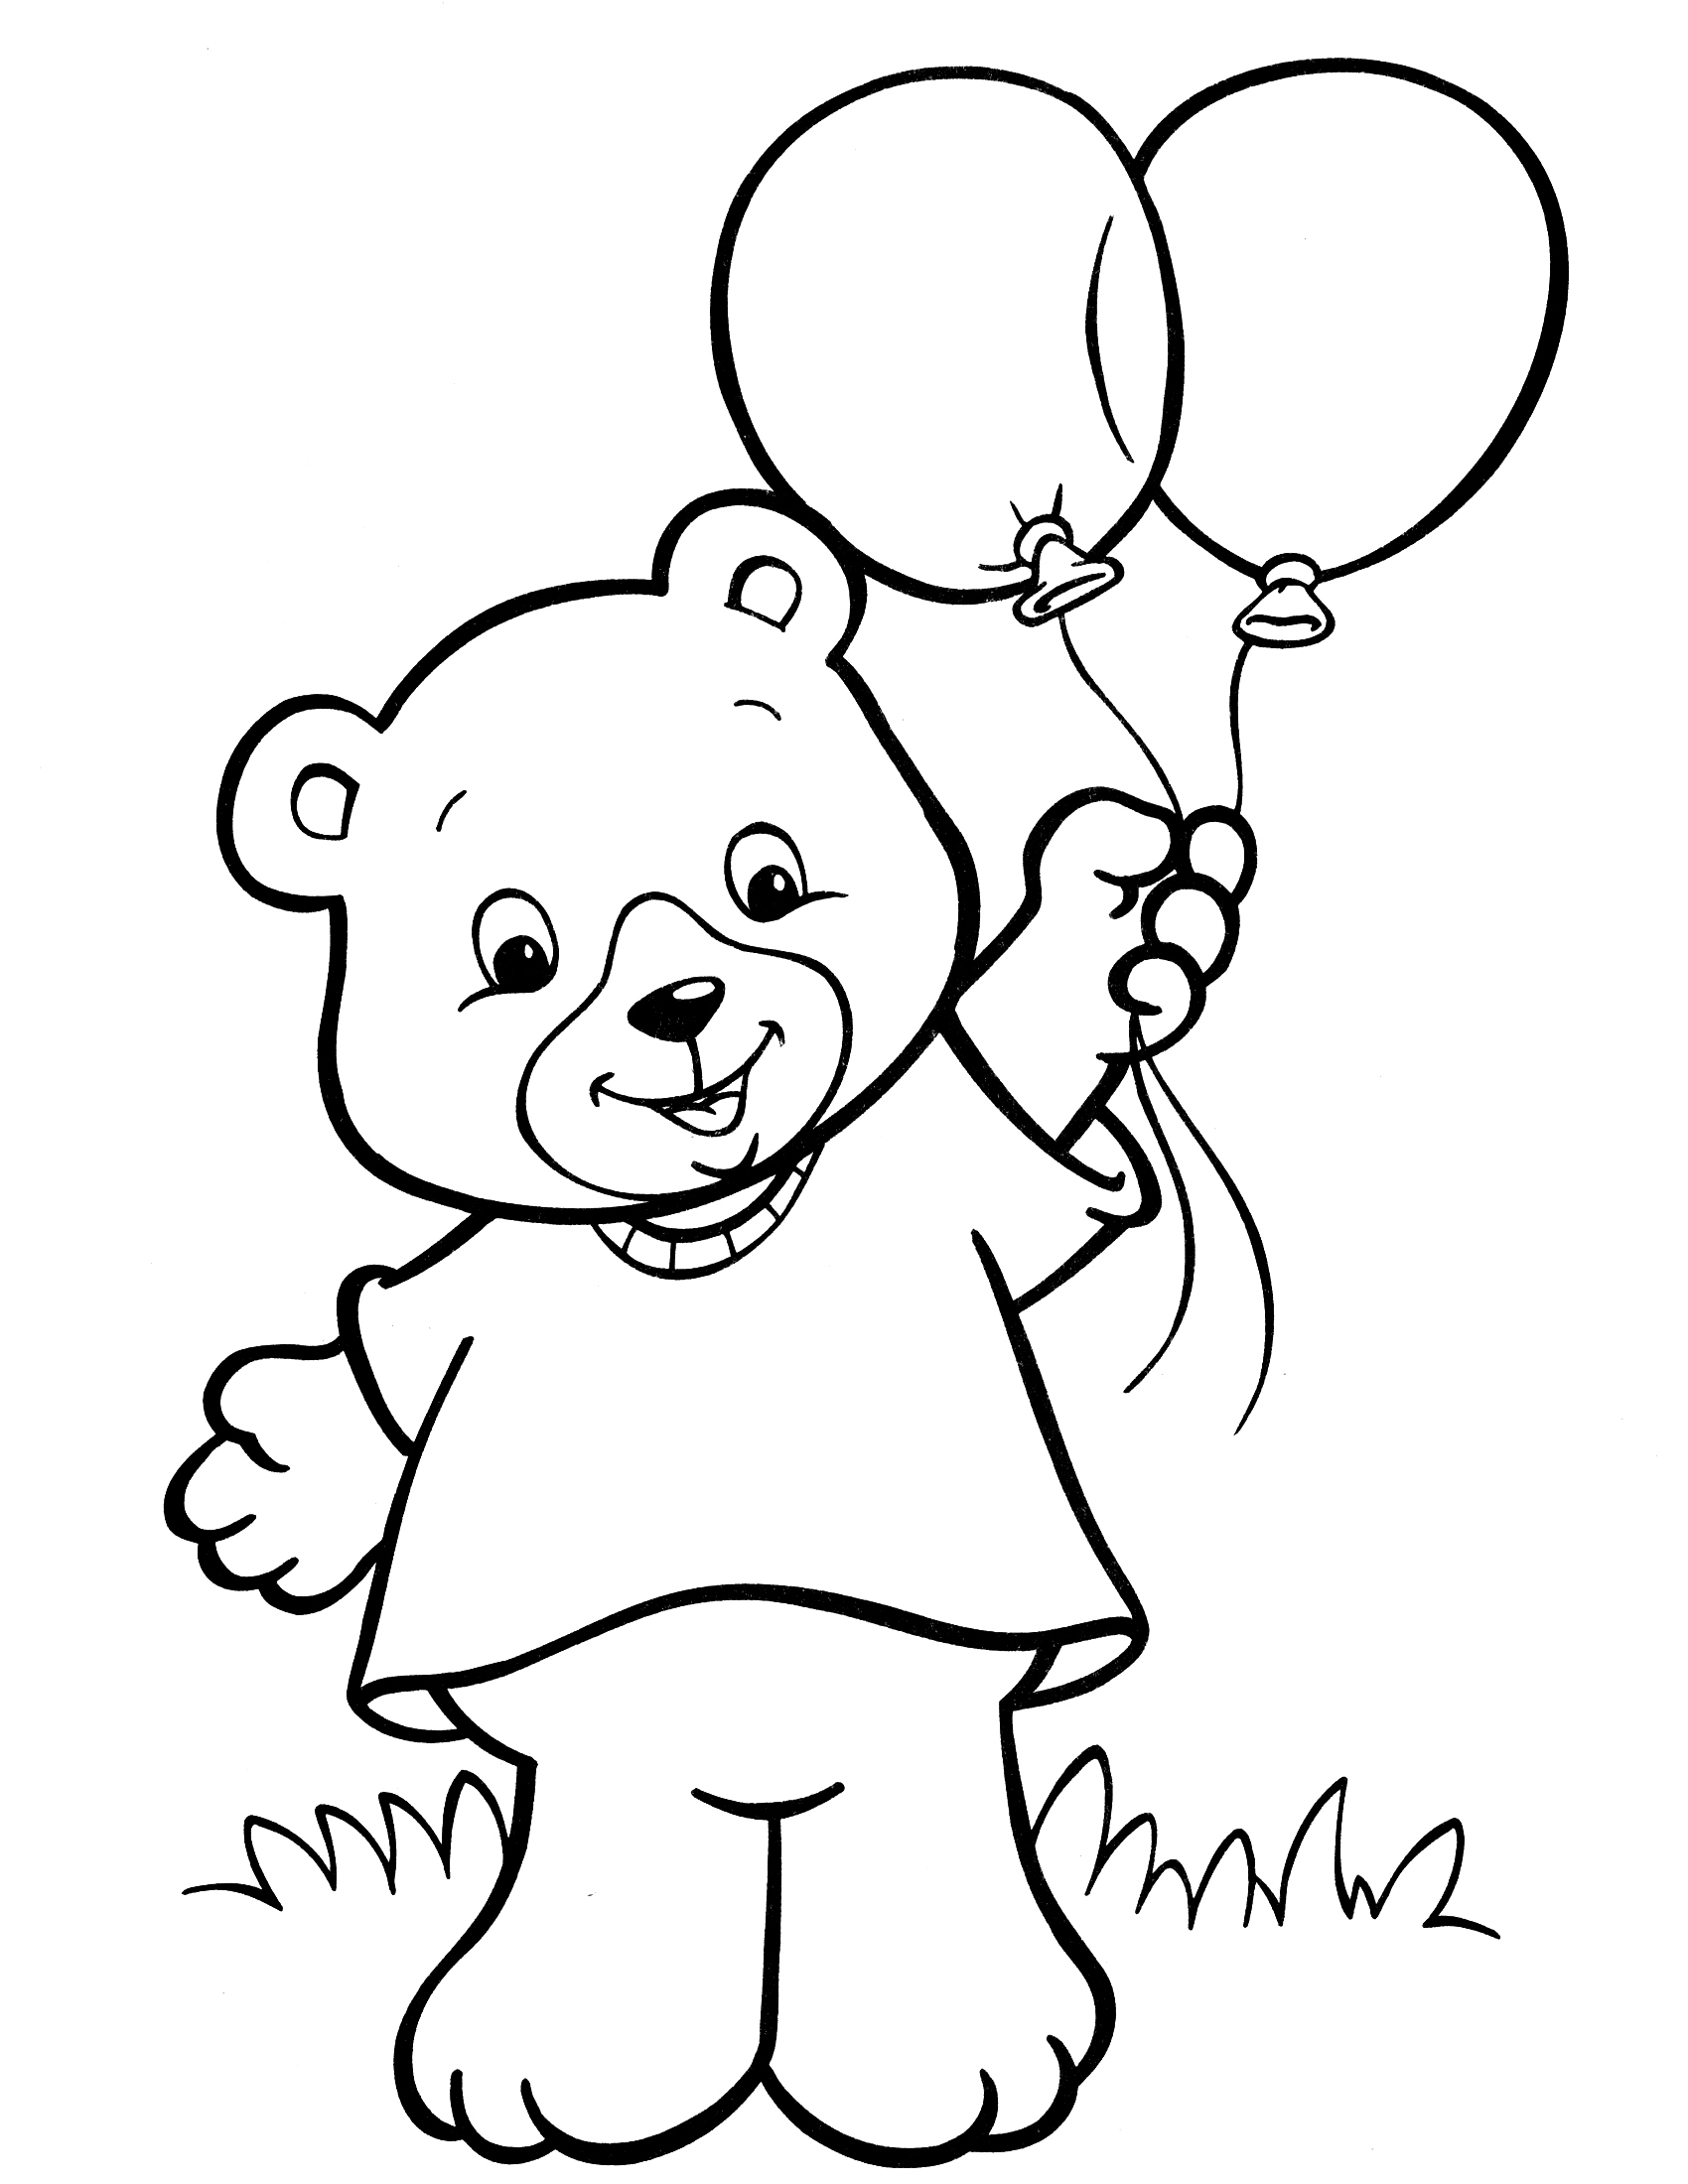 printable colouring pages for 2 year olds coloring pages for 10 year olds printable at getcolorings olds pages for year printable colouring 2